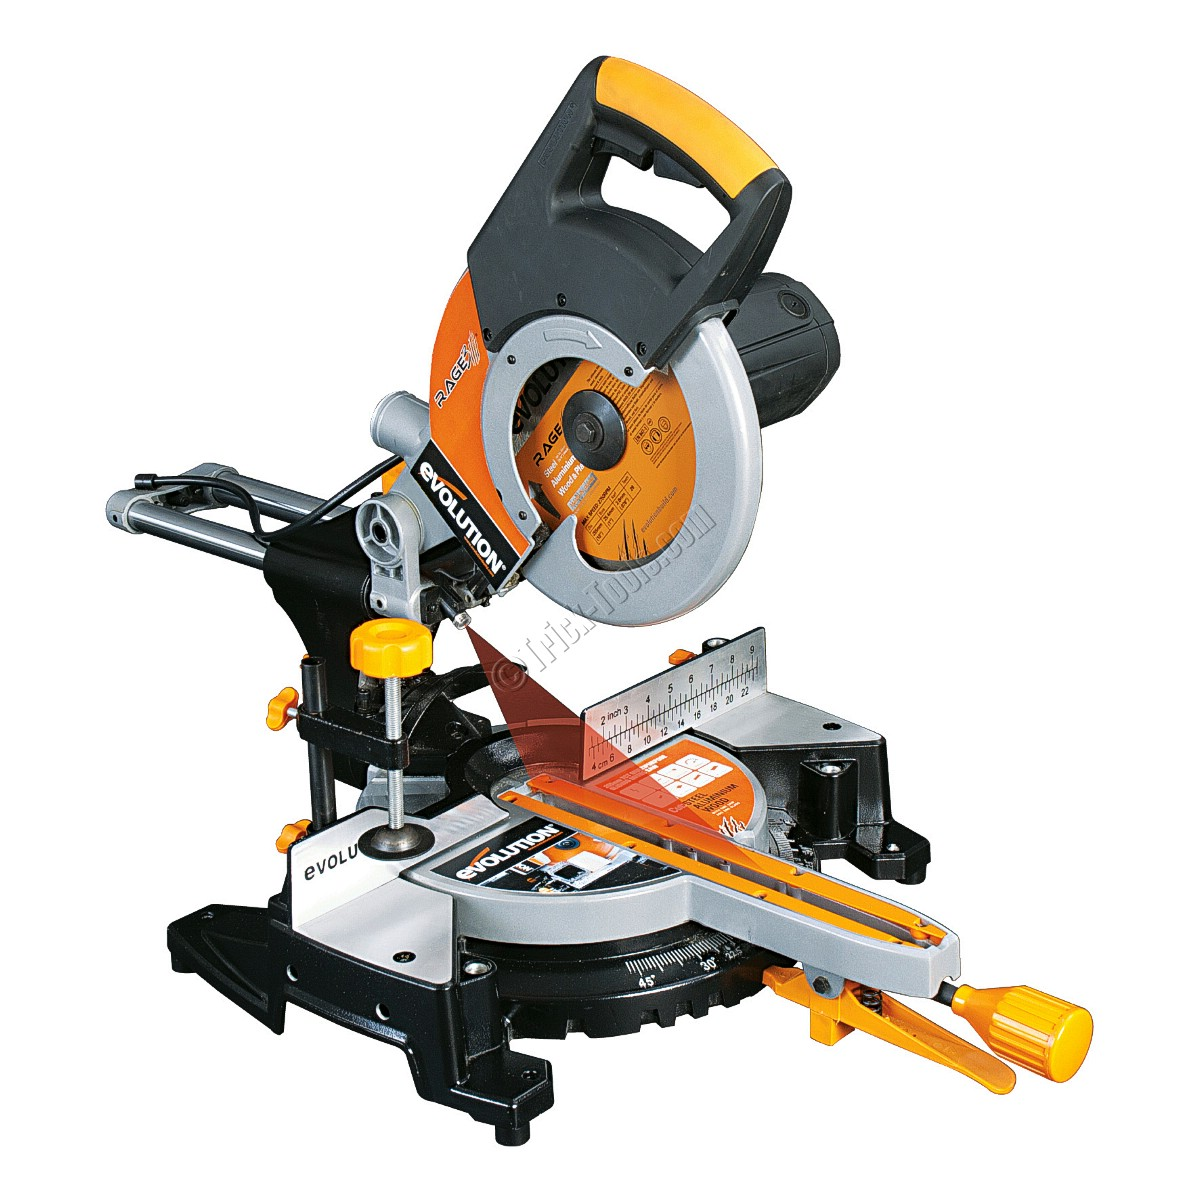 Evolution rage 3 metal cutting miter saw rage3 evolution rage 3fp multipurpose tct sliding miter saw greentooth Image collections